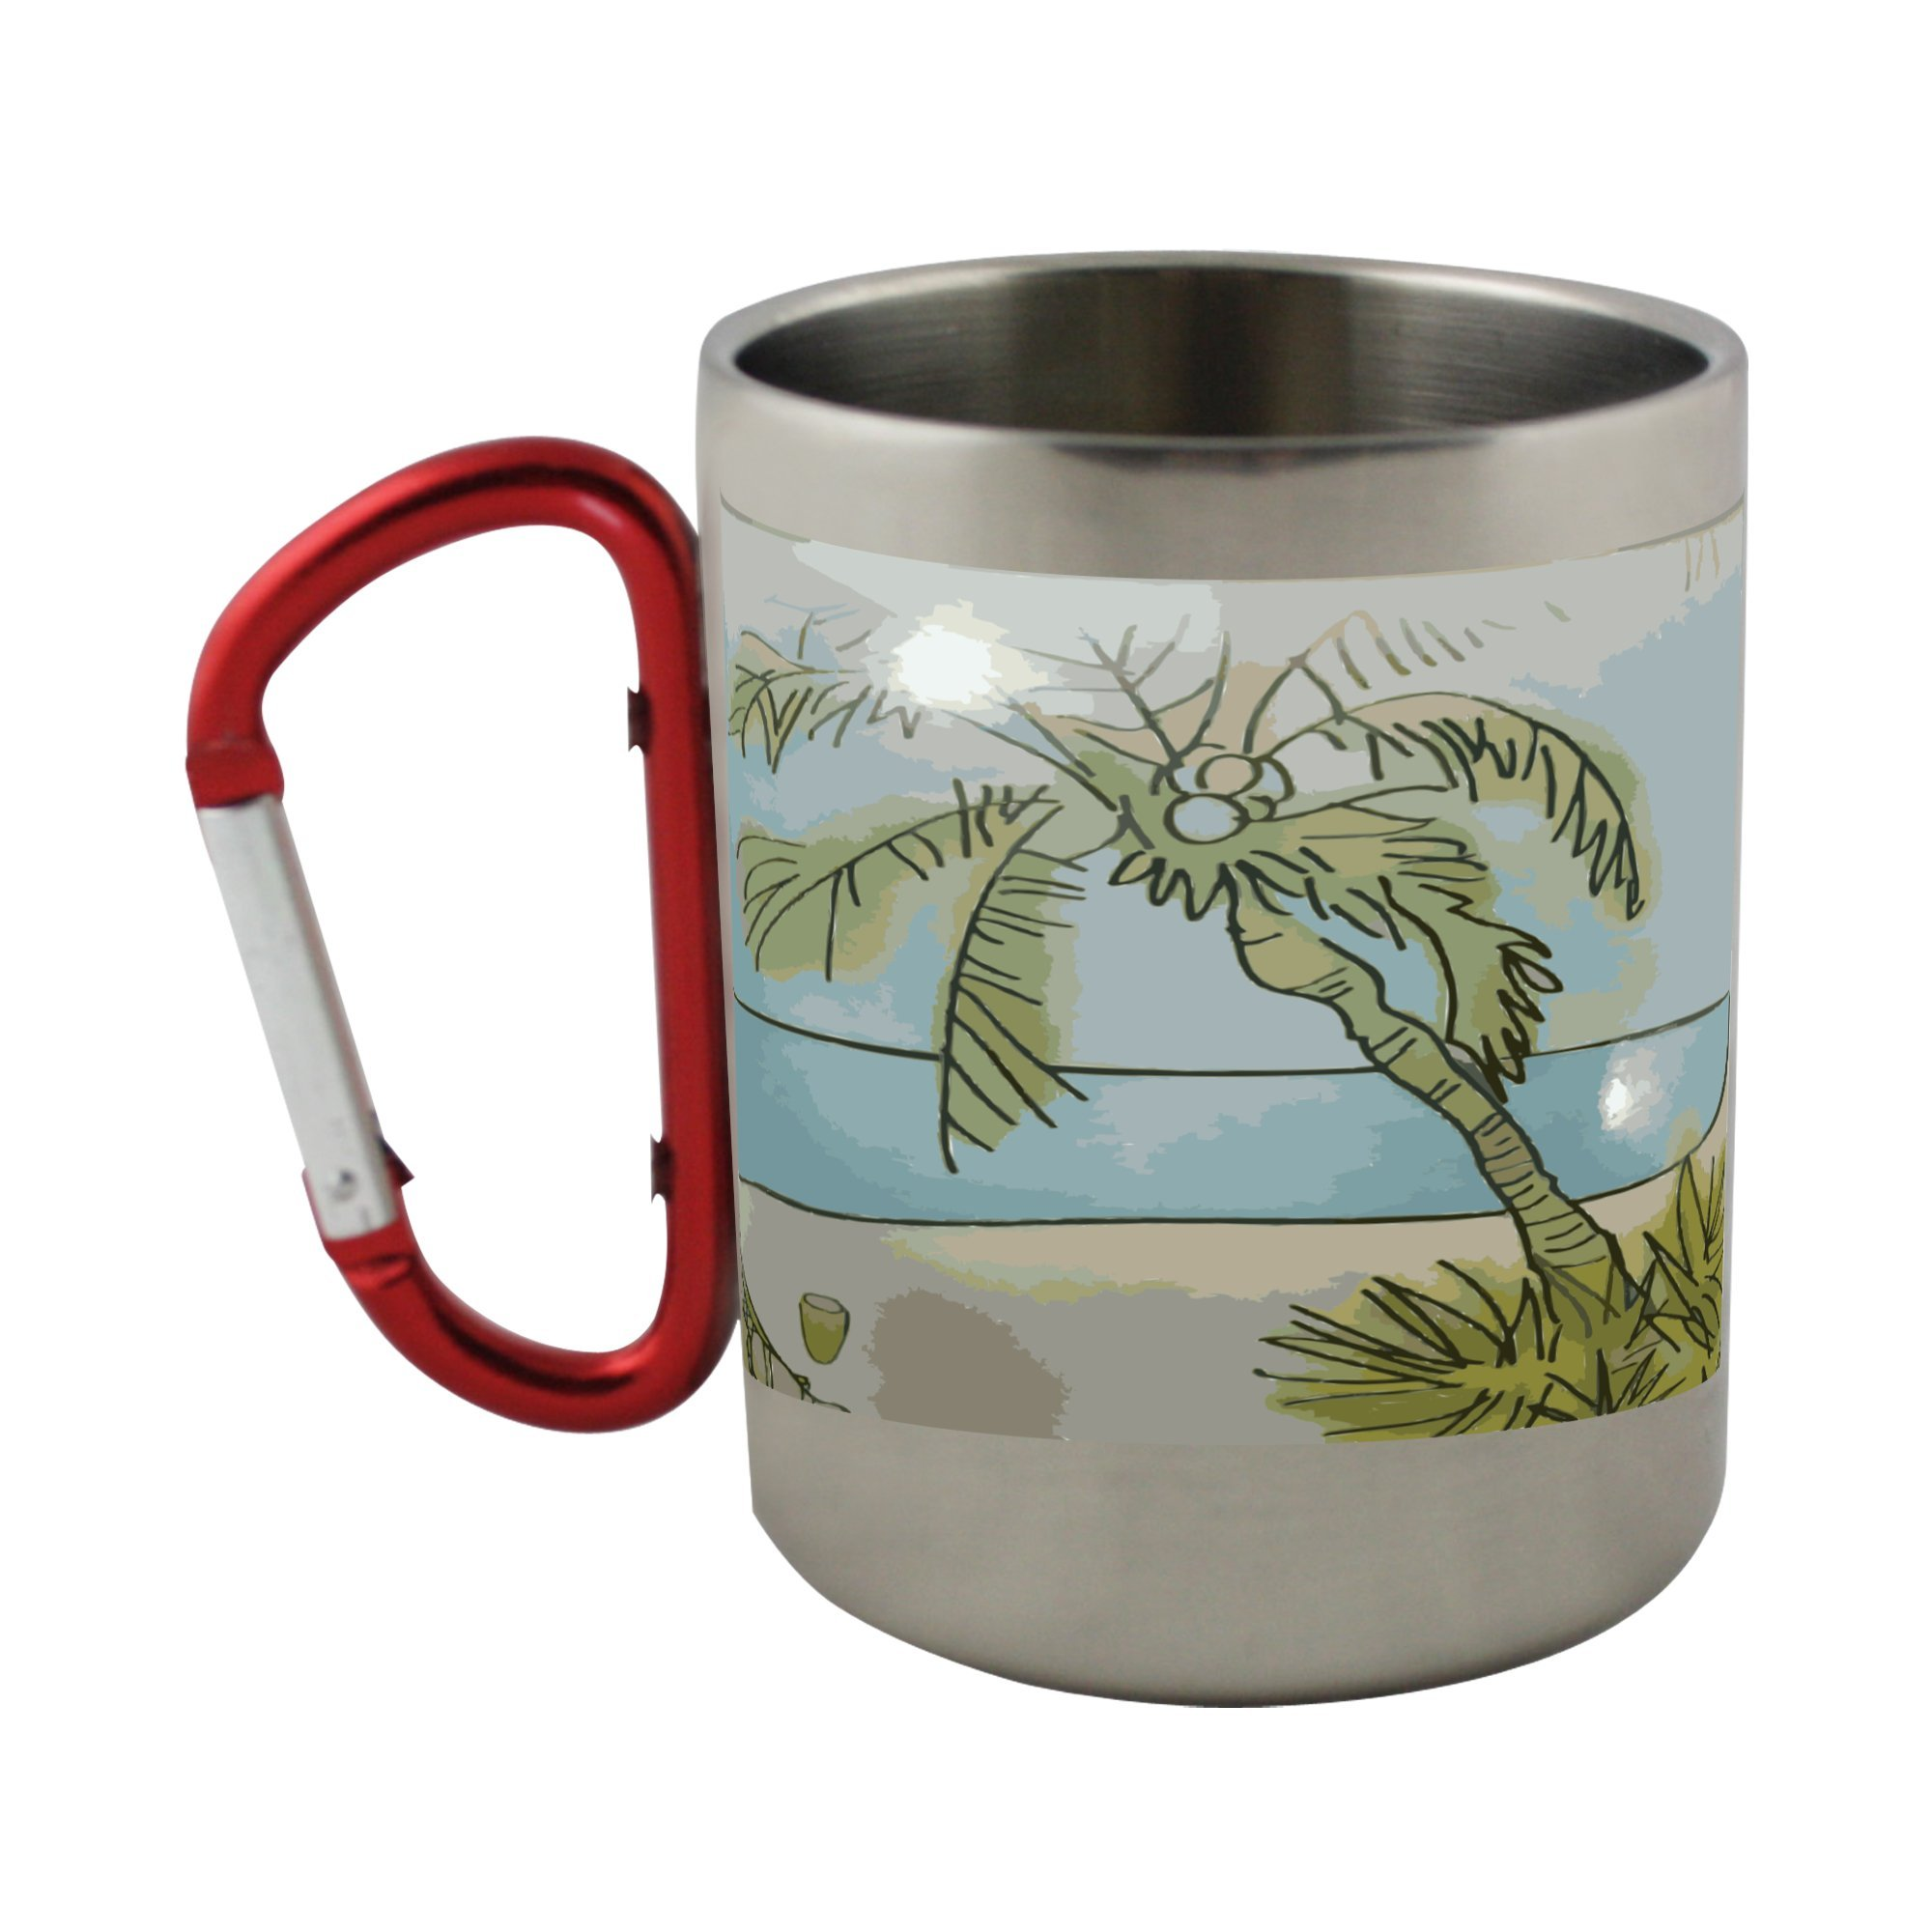 Stainless steel mug with carabiner handle with Remix of Thai Restaurant Beach Scene